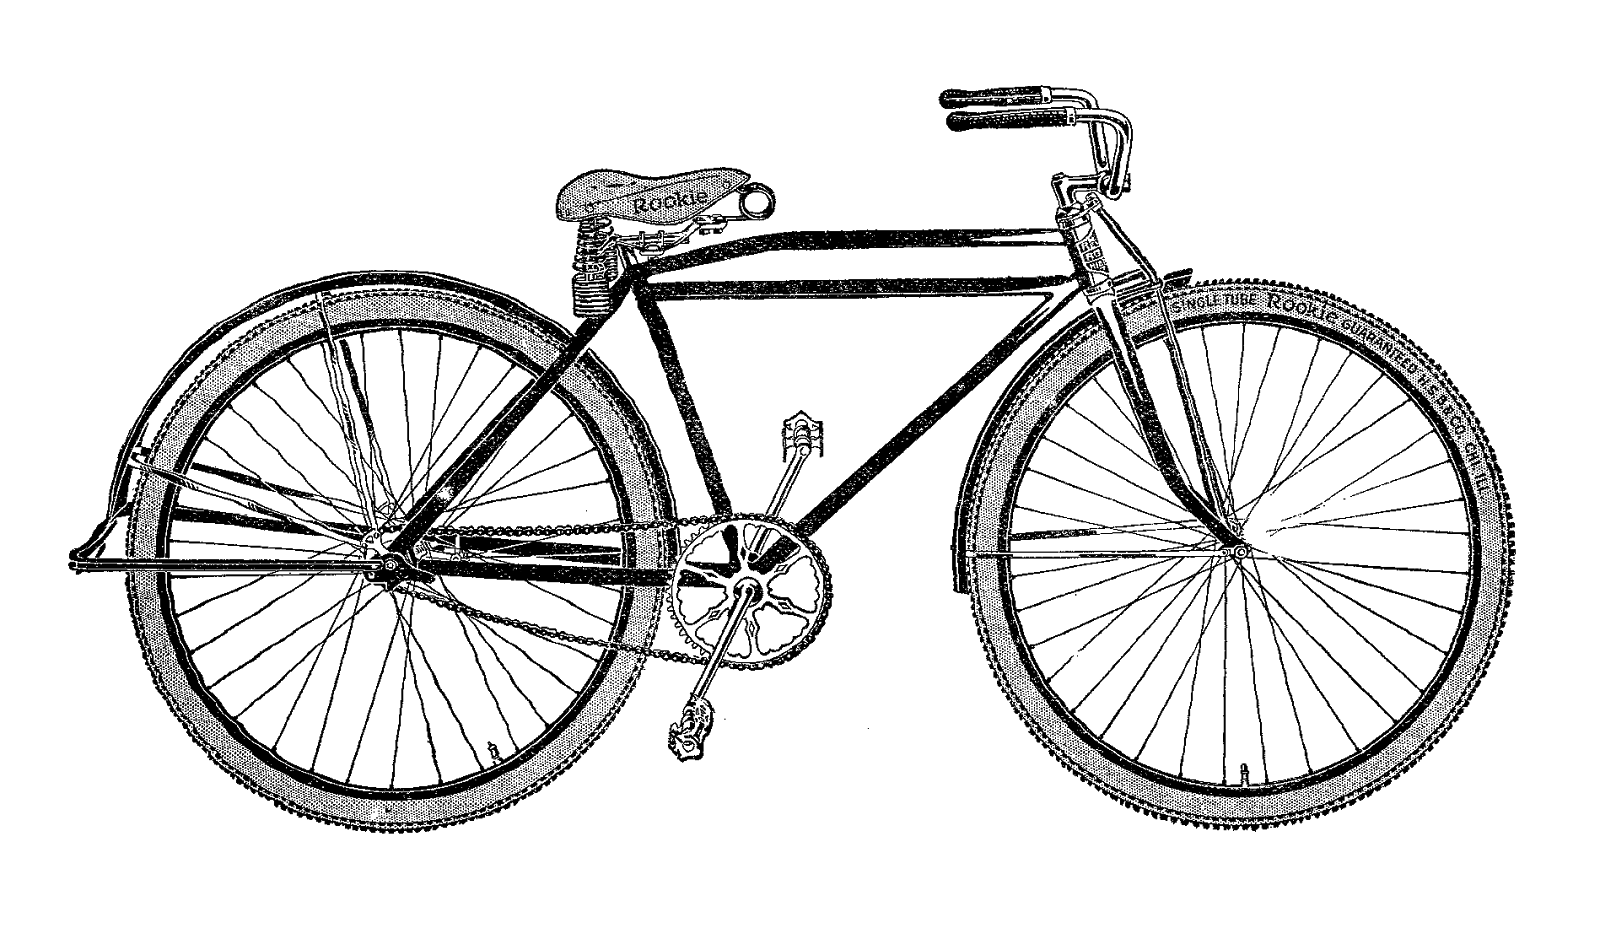 Bicycle transparent png stickpng. Cycle clipart antique bike image black and white